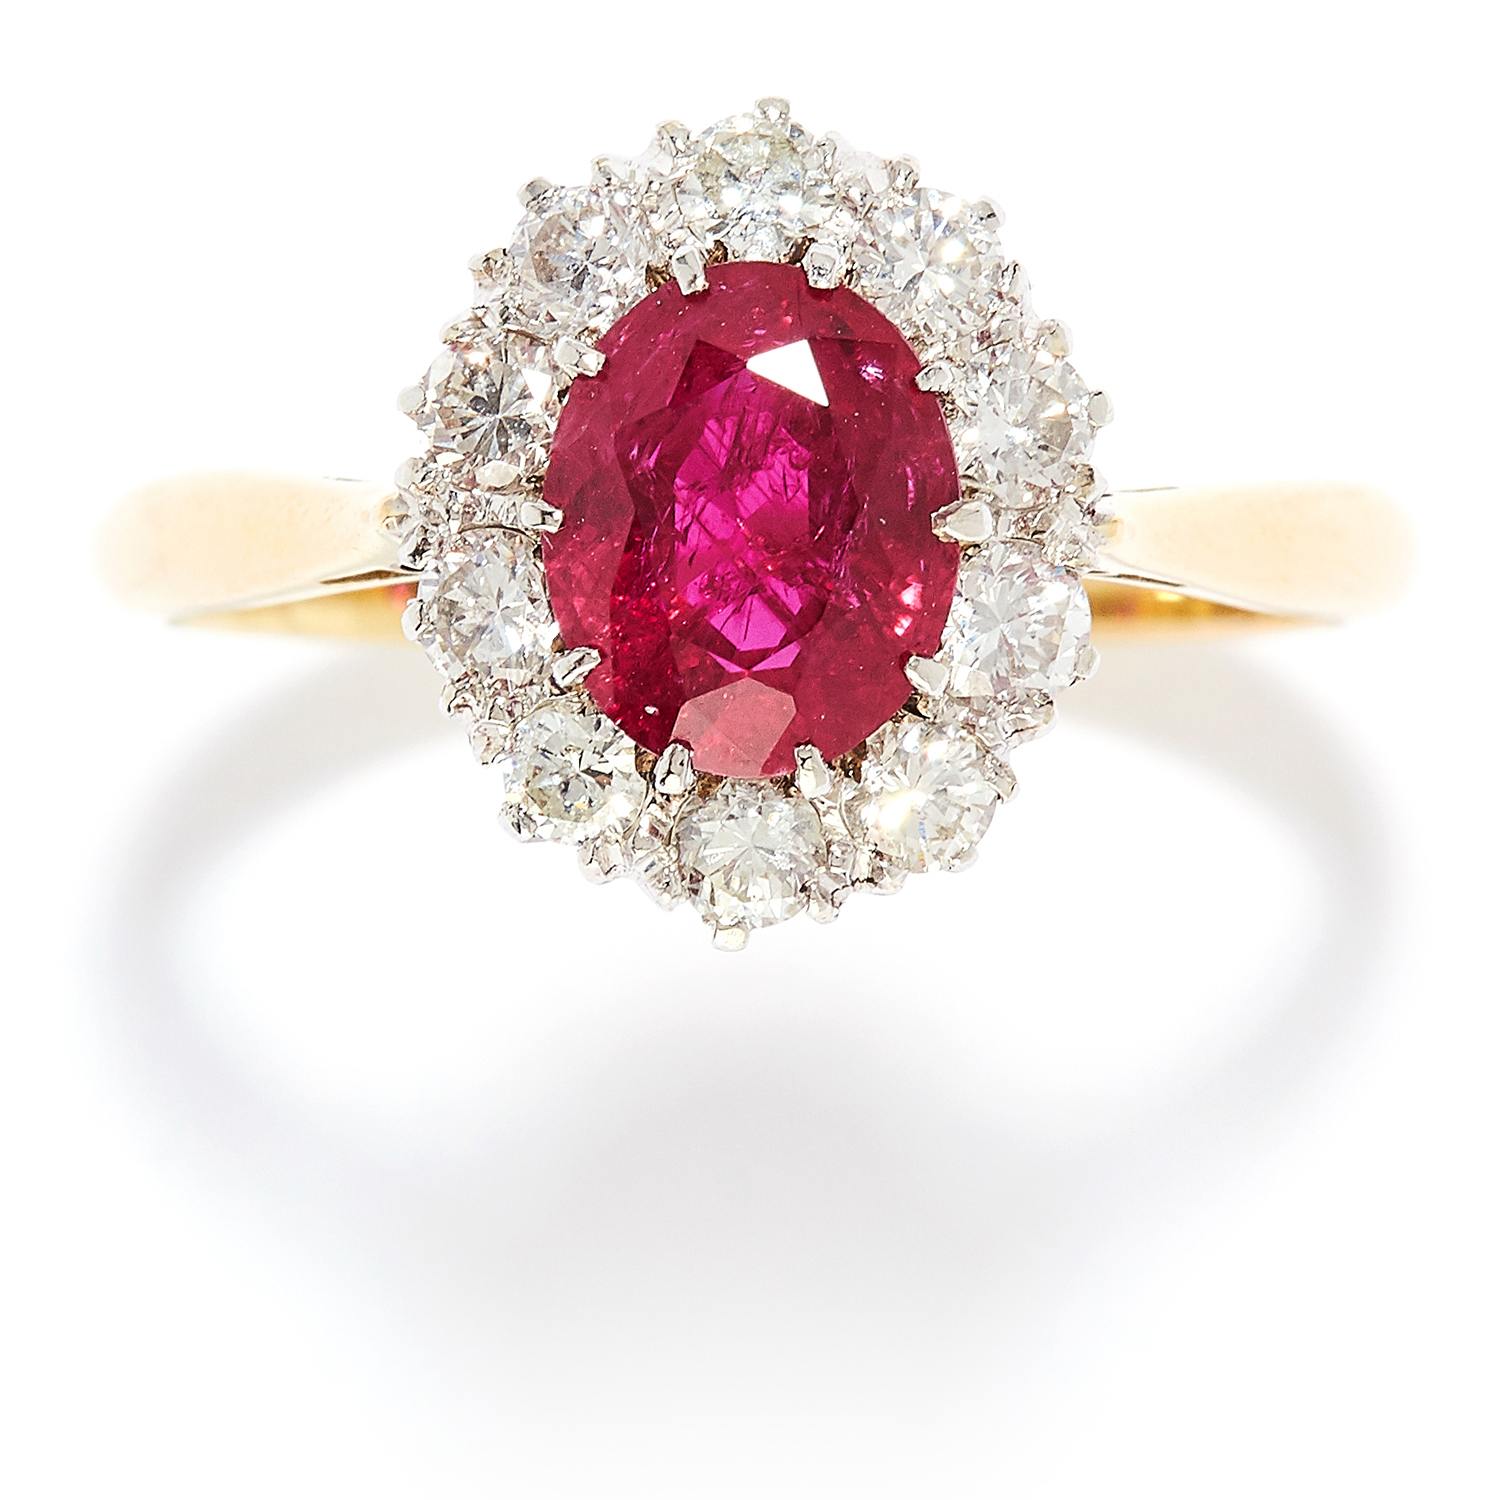 1.20 CARAT RUBY AND DIAMOND CLUSTER RING in 18ct yellow gold, set with a oval cut ruby of